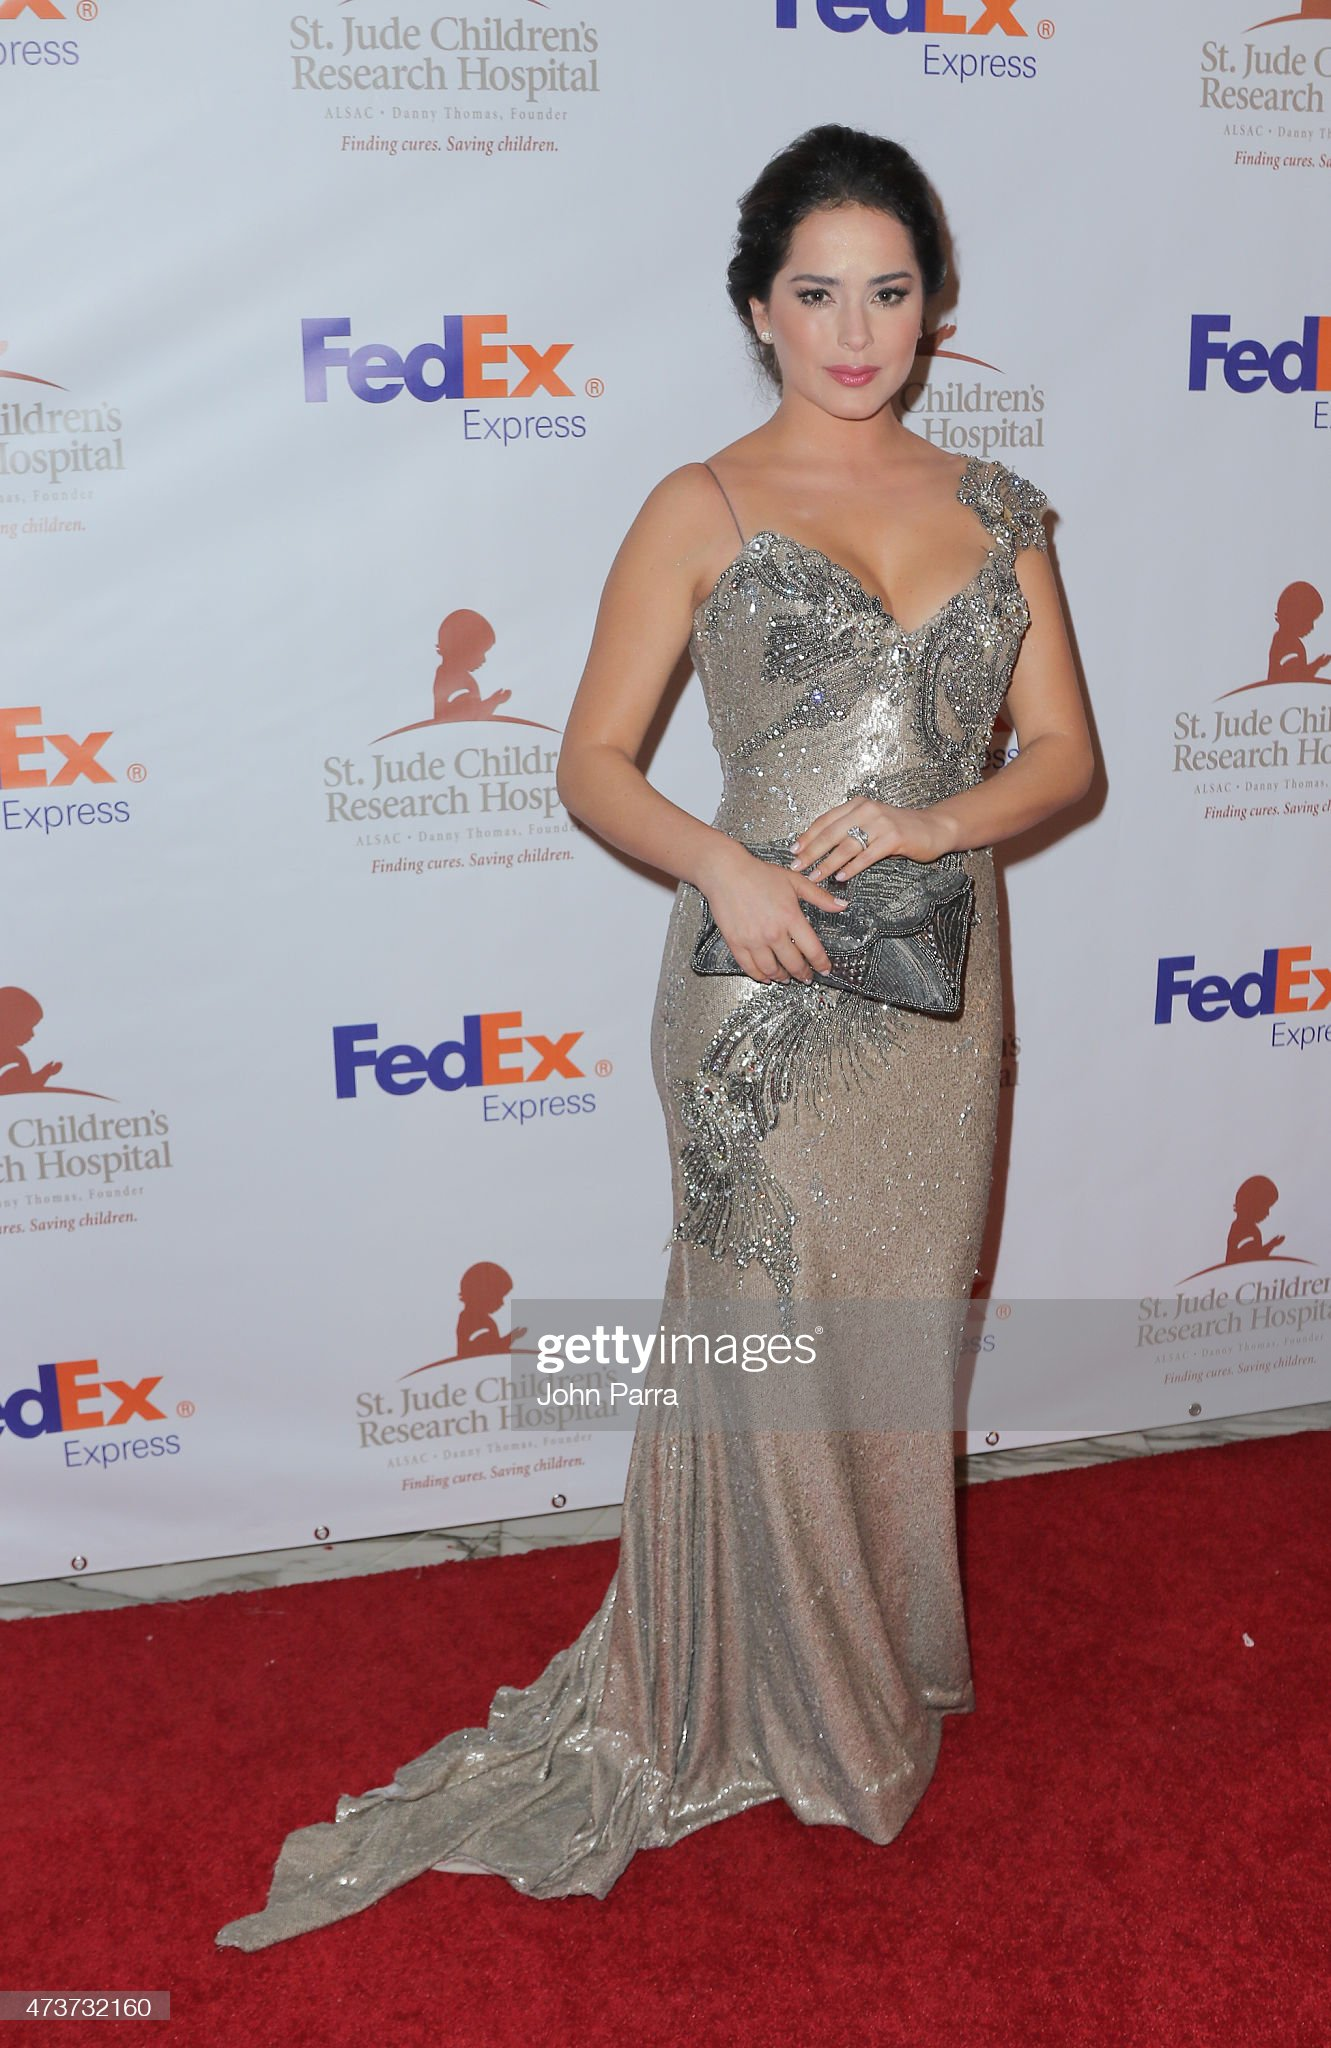 ¿Cuánto mide Danna García? - Altura - Real height Danna-garcia-attends-the-13th-annual-fedexst-jude-angels-and-stars-picture-id473732160?s=2048x2048